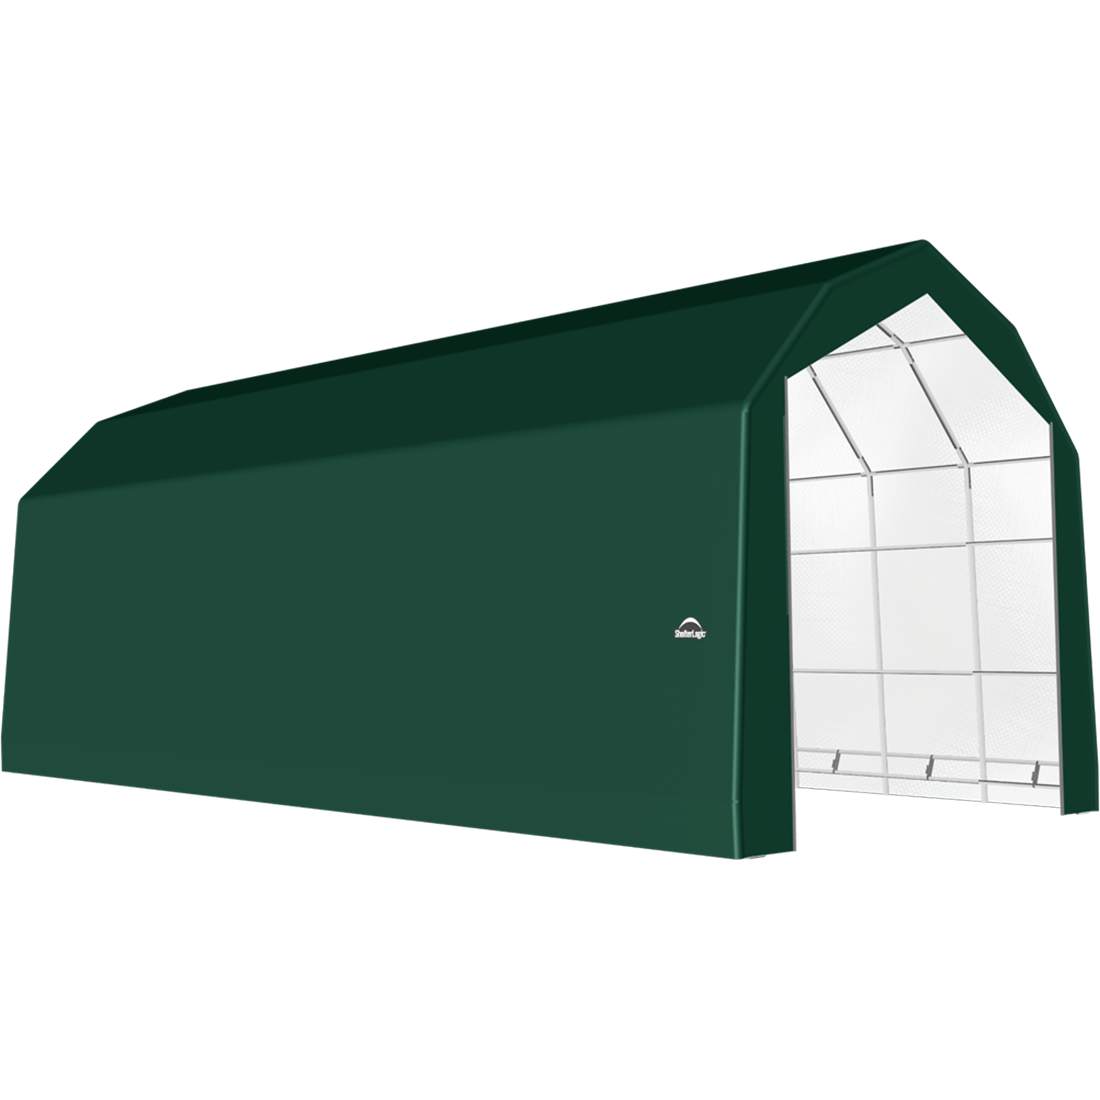 SP Barn 20X48X18 Green 14 oz PE Shelter